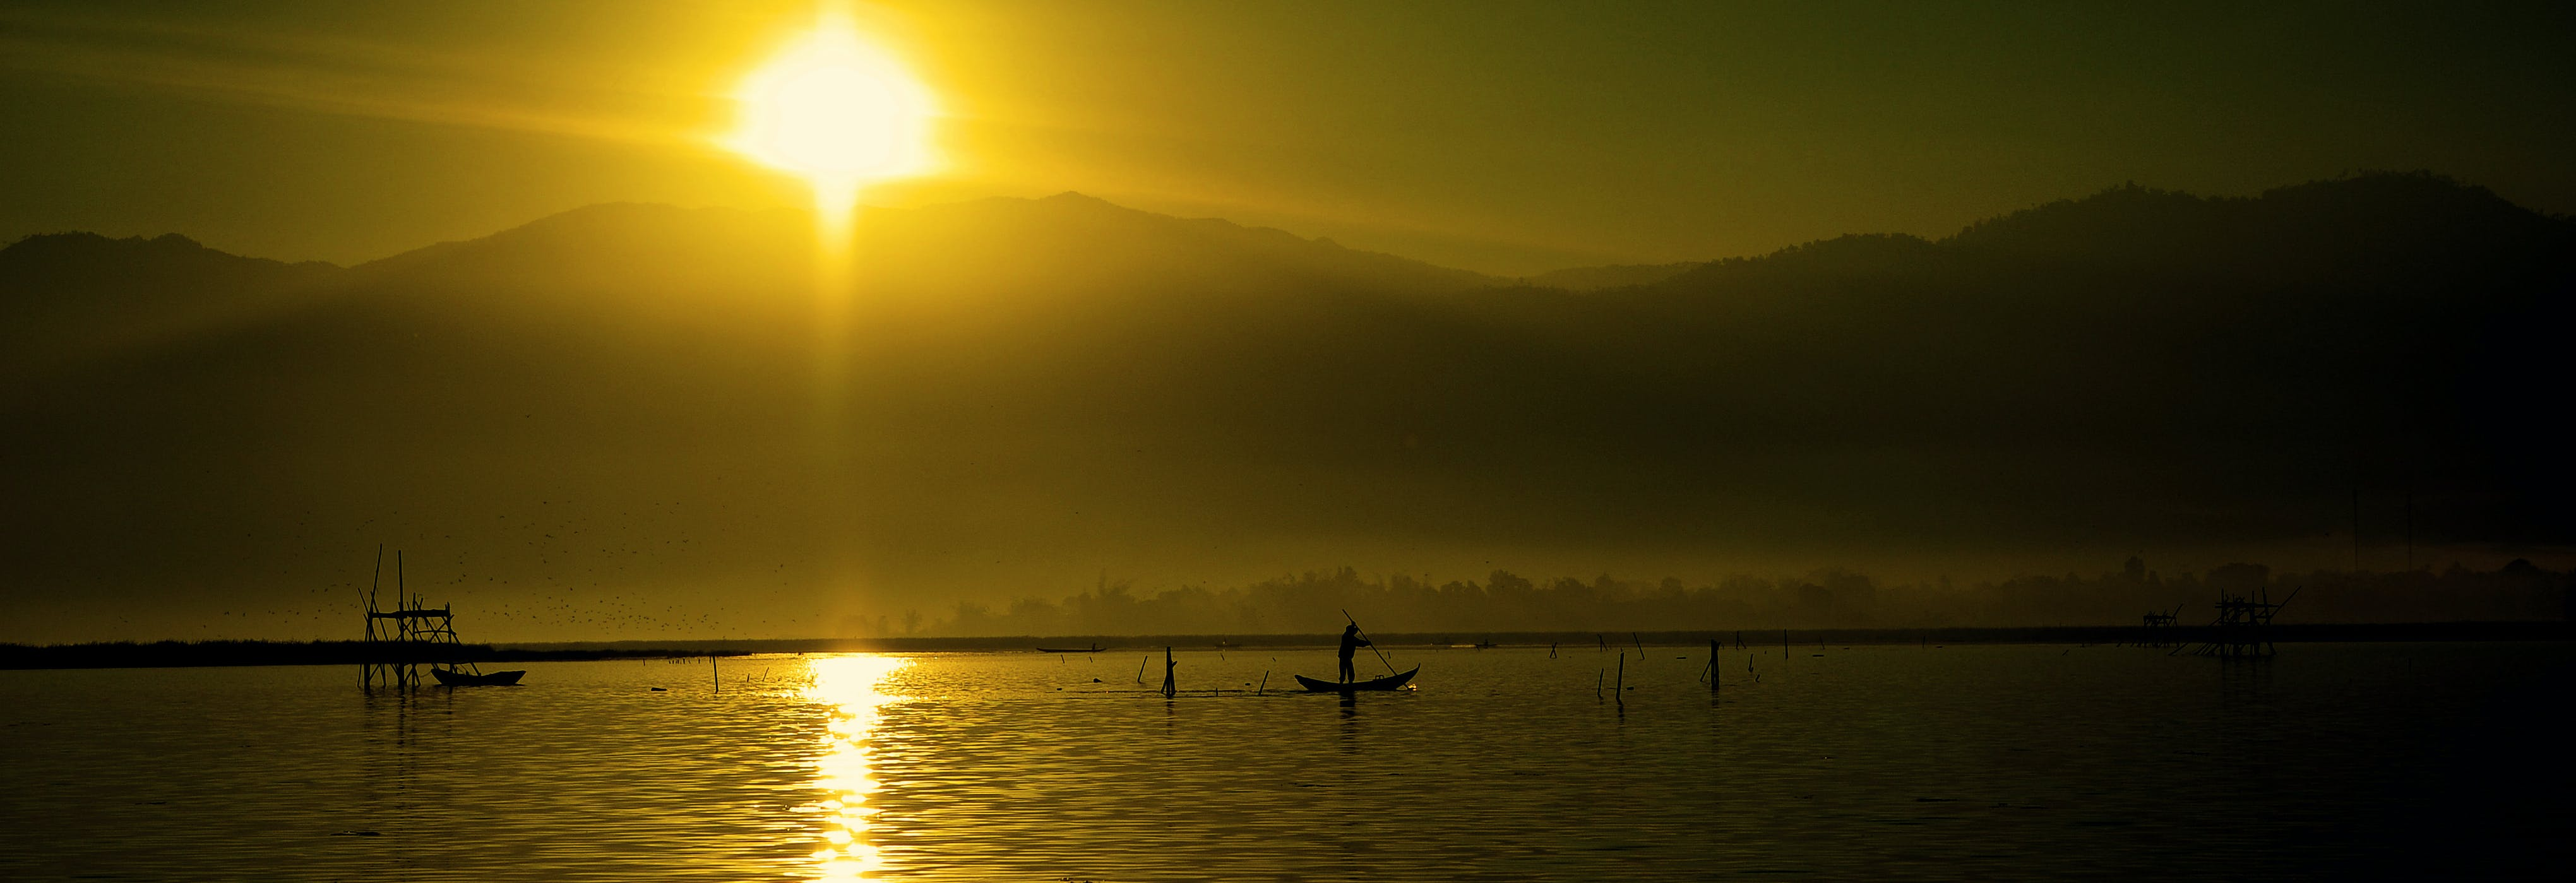 Silhouette of People Riding Boats on Water during Daytime